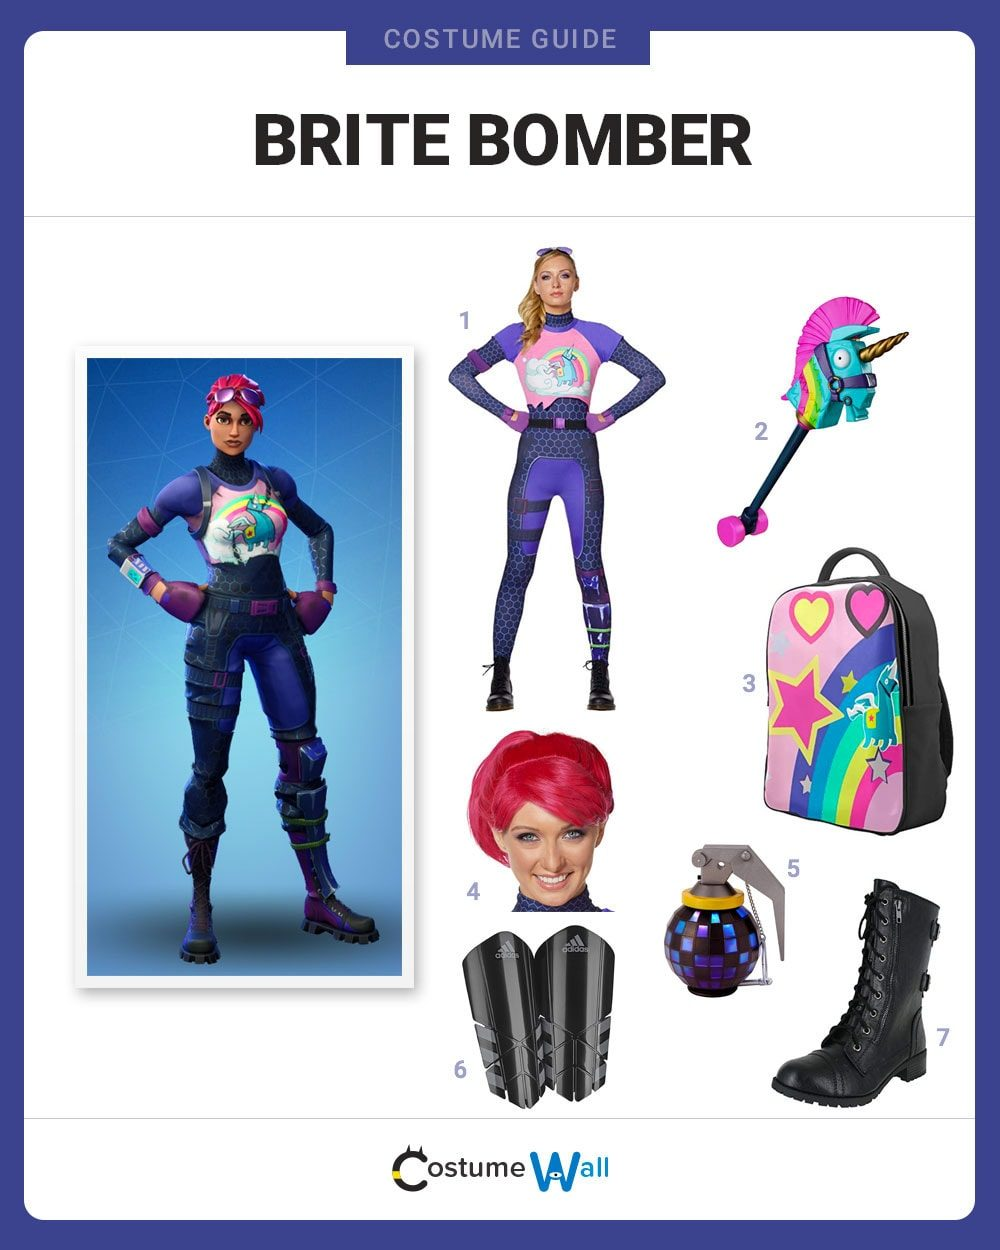 Dress Like Brite Bomber From Fortnite Costume Halloween And